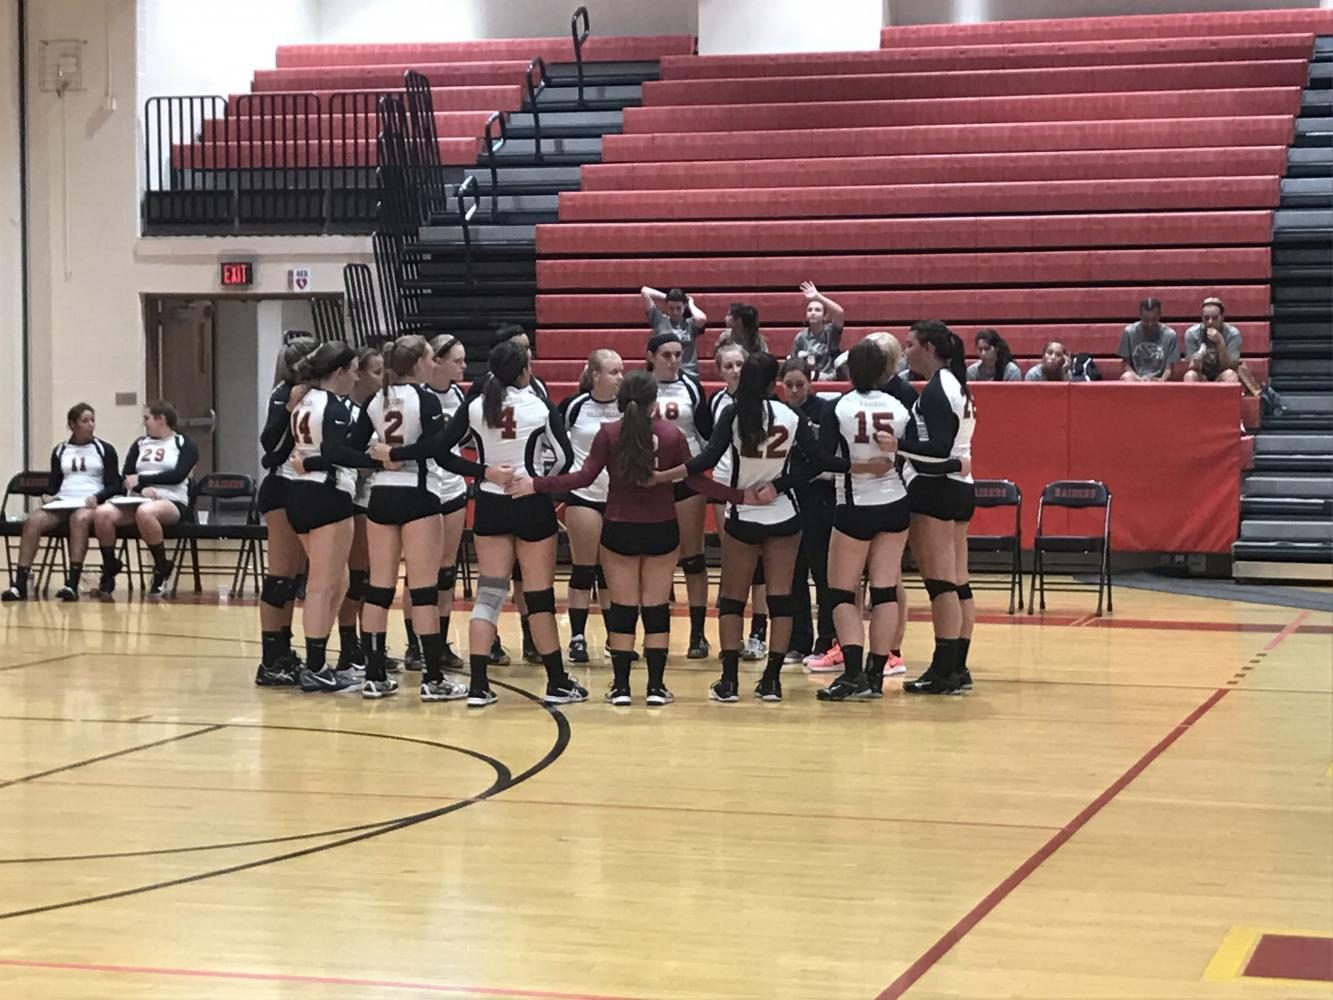 The volleyball team pays close attention as head coach Cheryl Iaione talks to them before a match.